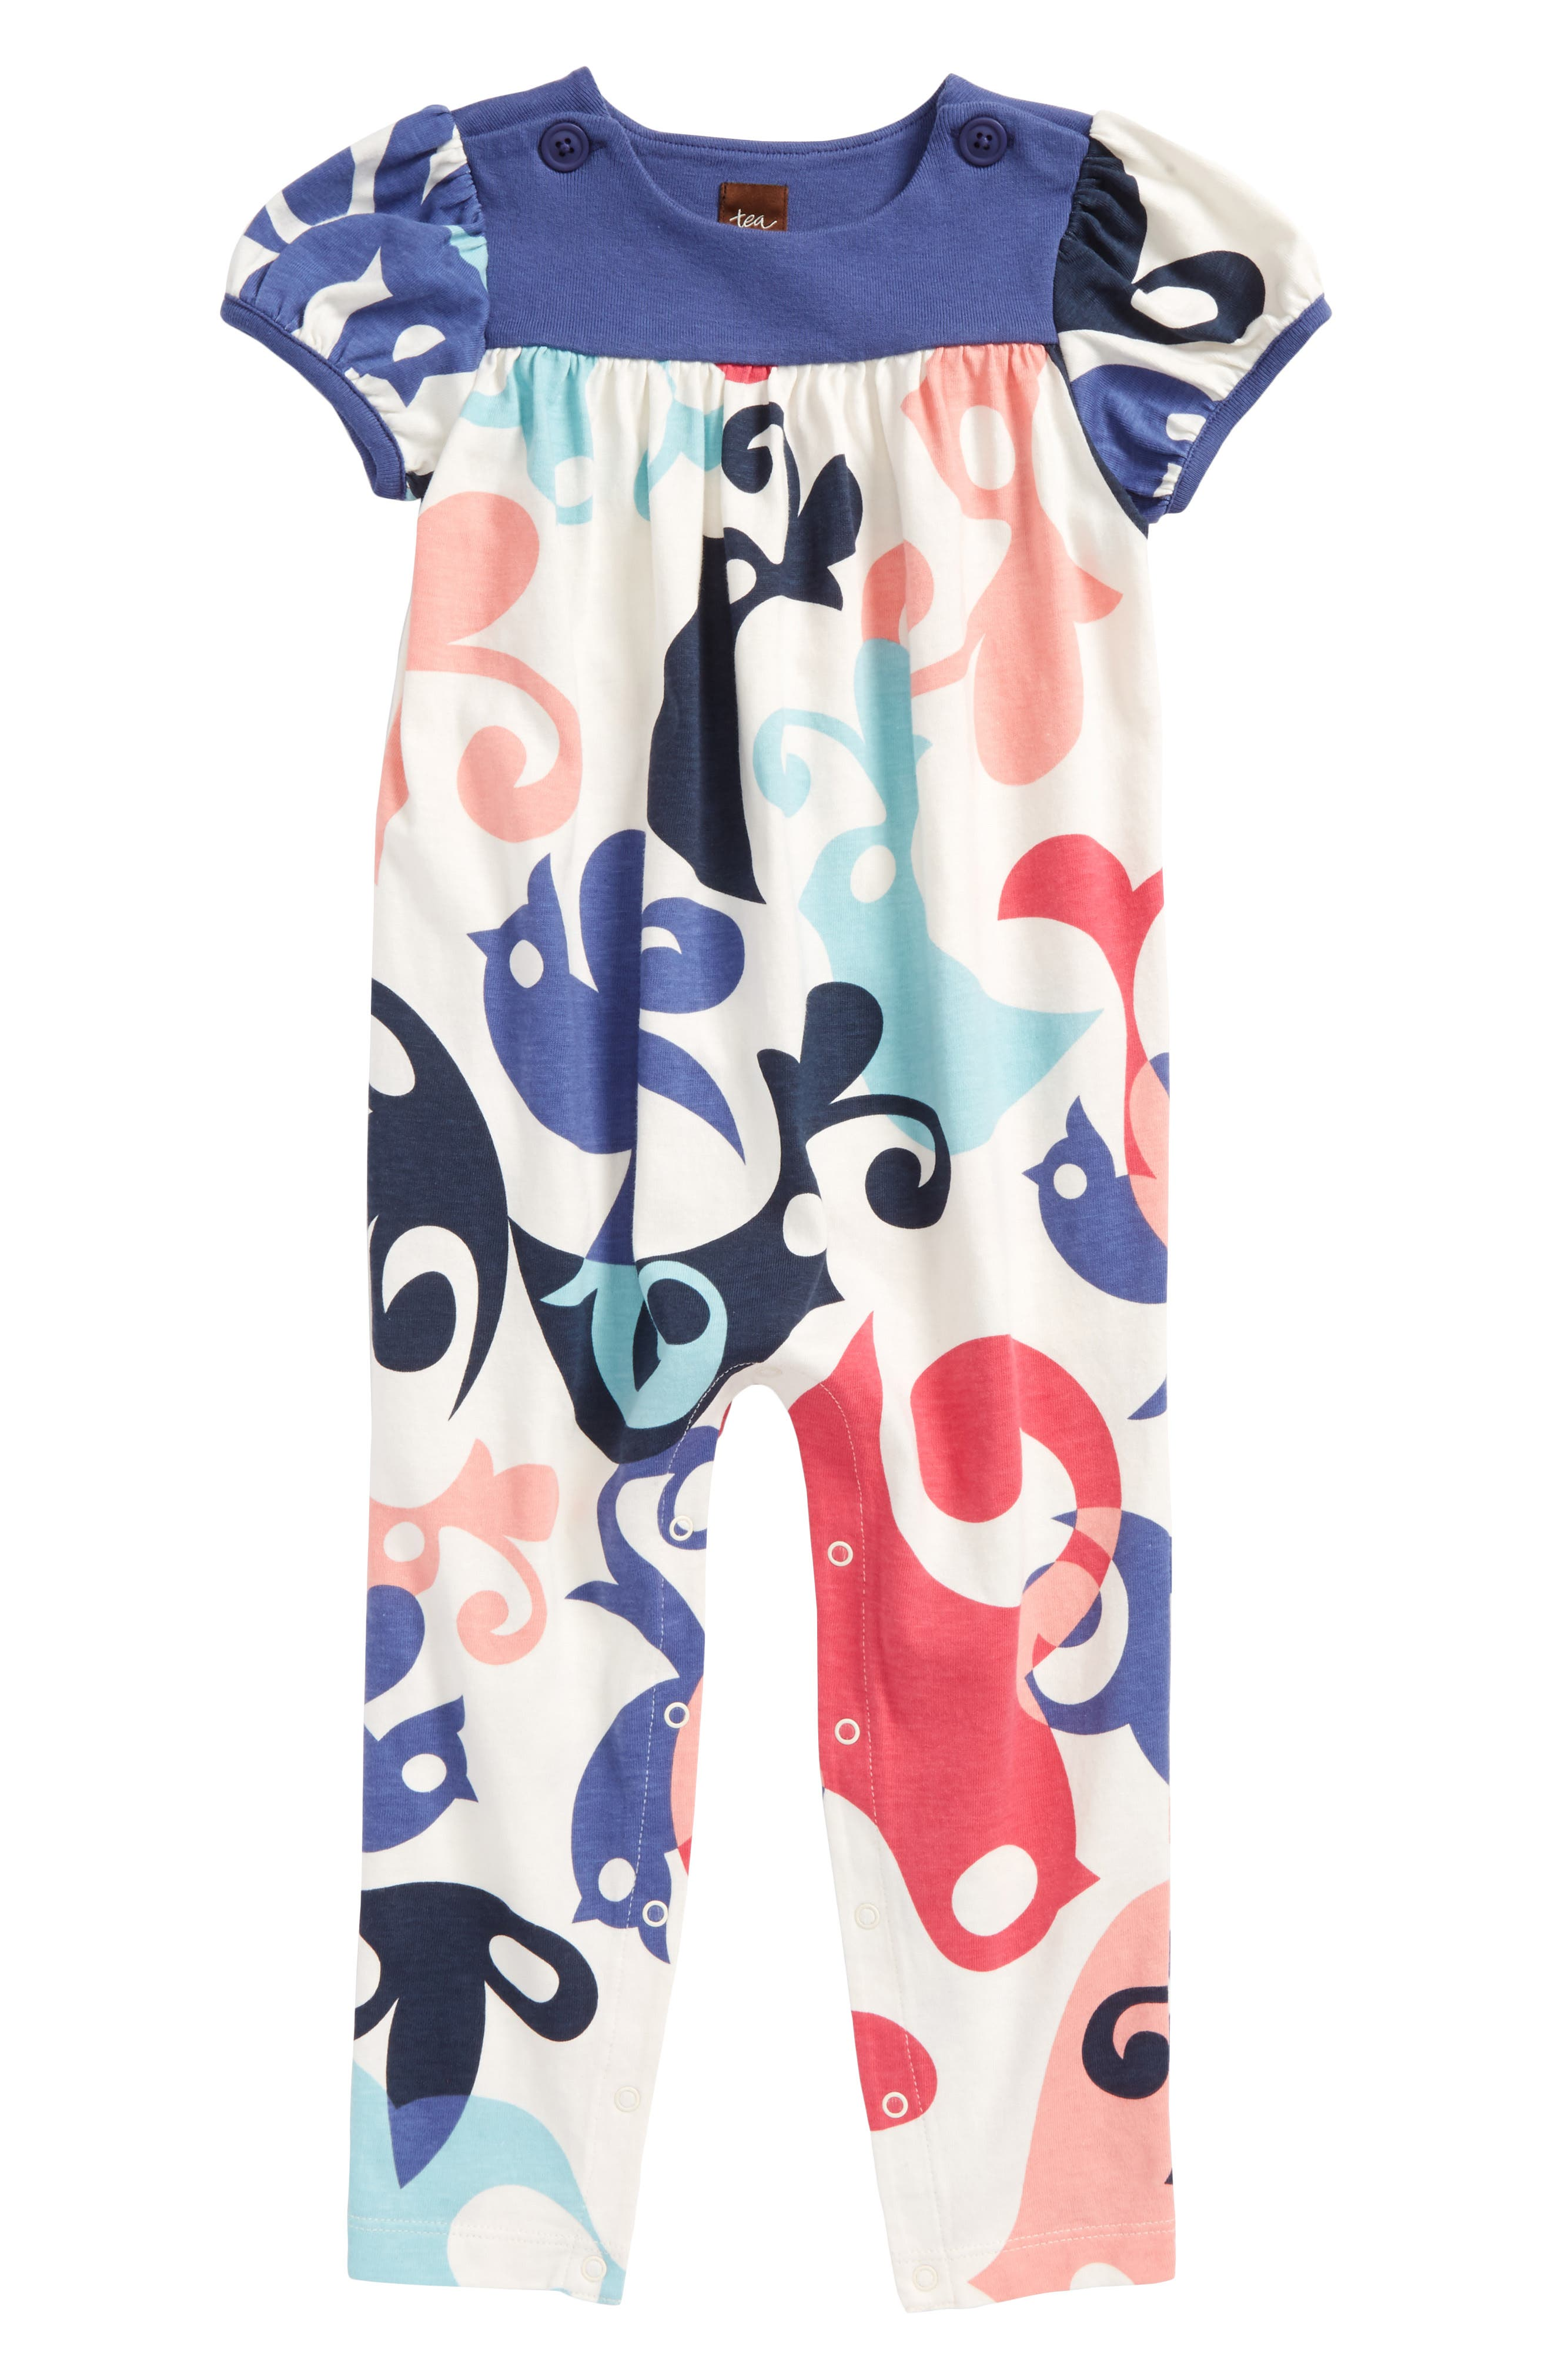 Main Image - Tea Collection Print Romper (Baby Girls)